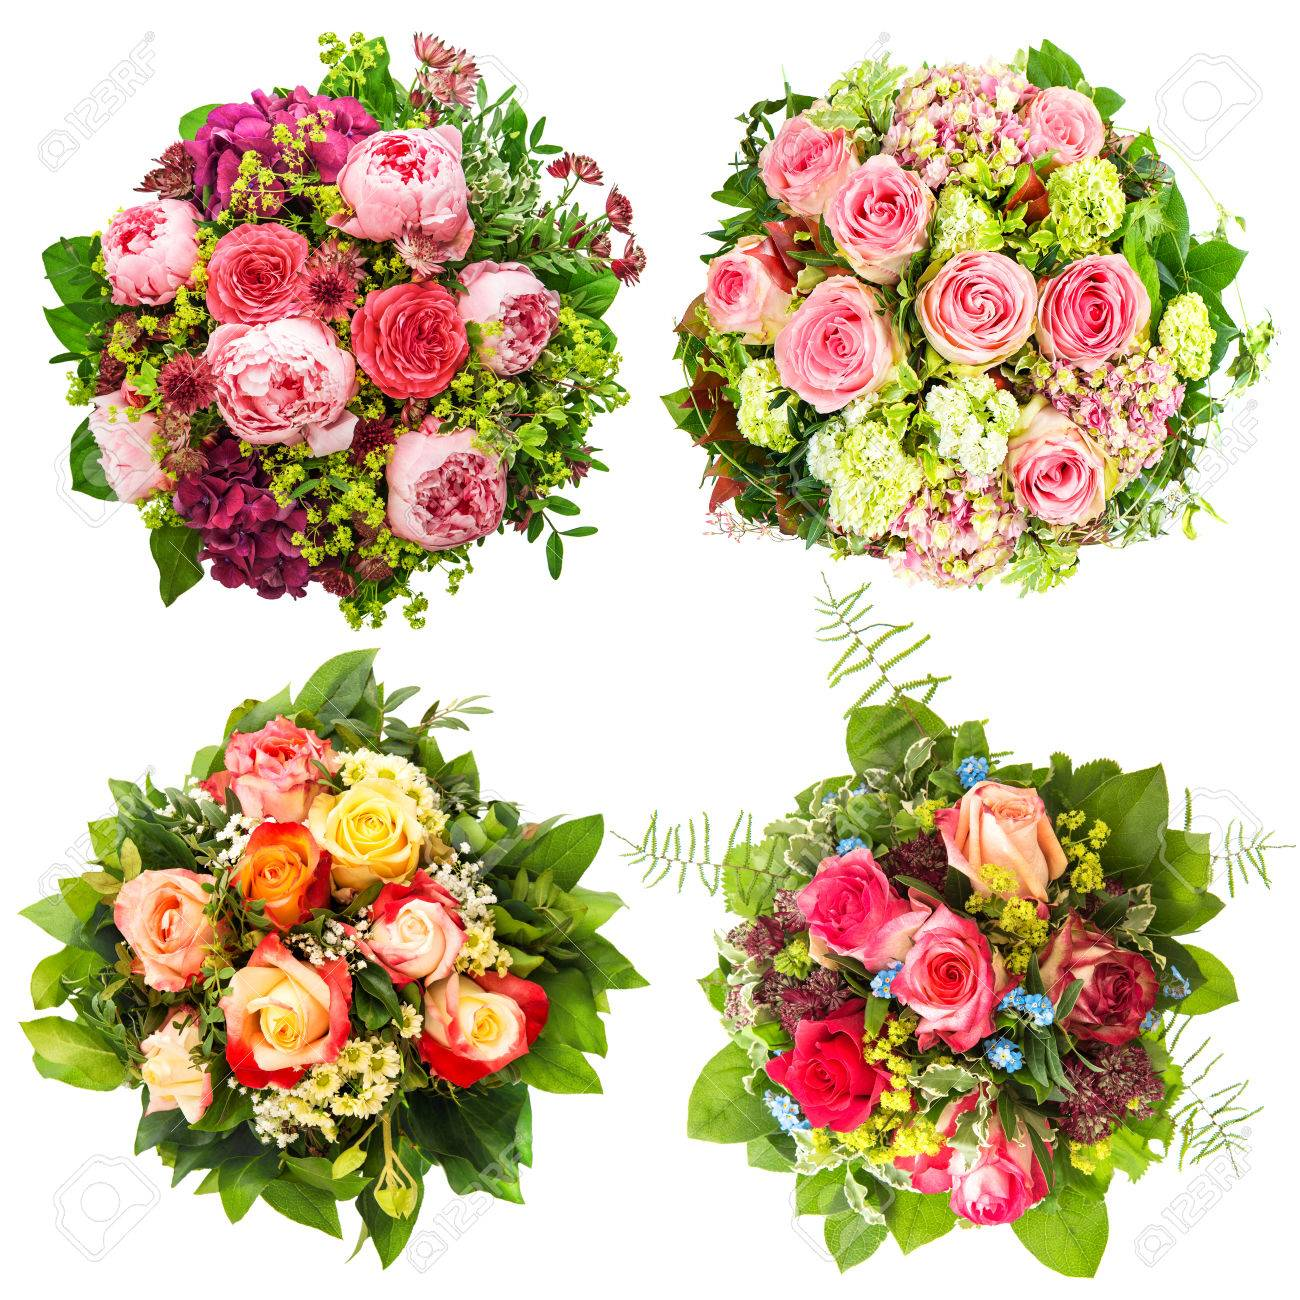 Flower for birthday english hedgerow with flower for birthday amazing flowers bouquet for birthday wedding mothers day easter holidays and life events with flower for birthday izmirmasajfo